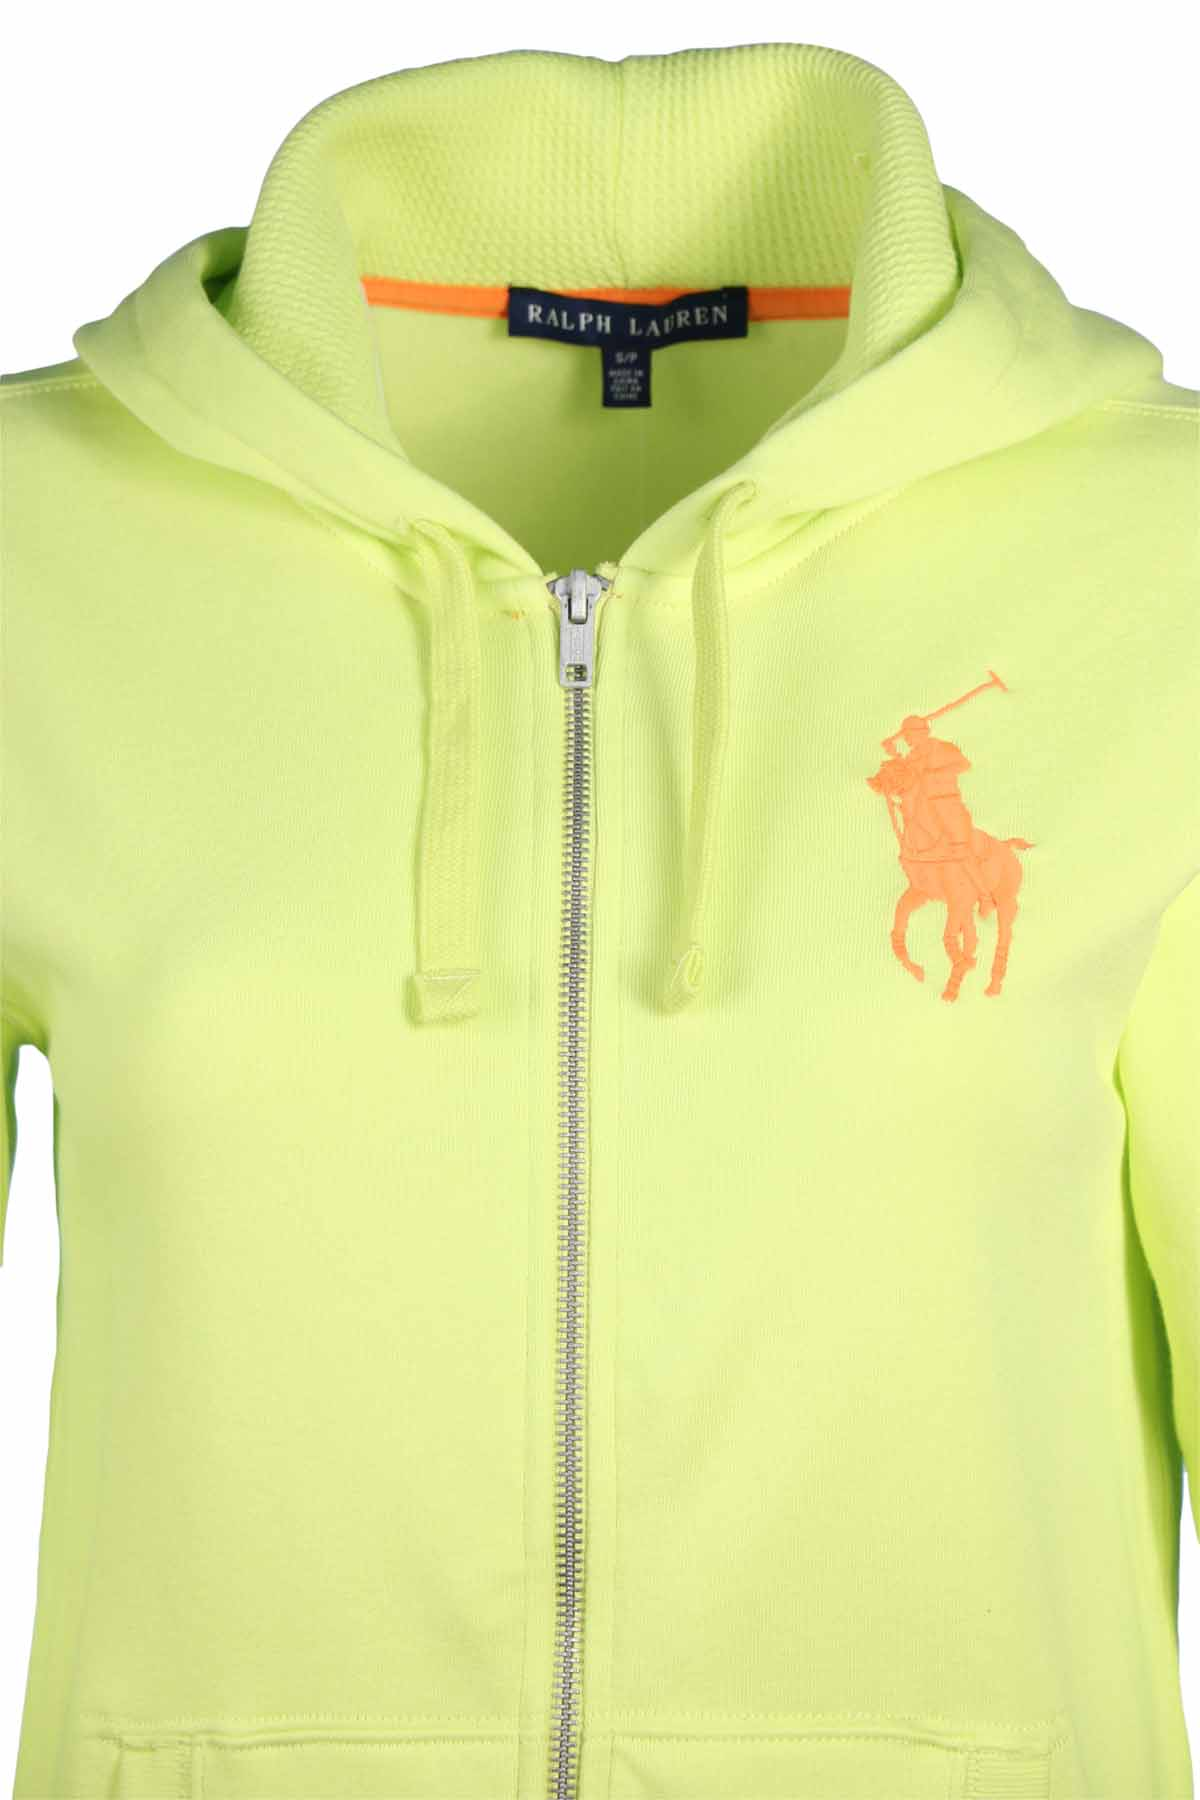 Polo Ralph Lauren Polo Ralph Lauren Women S Big Pony Zip Up Hoodie